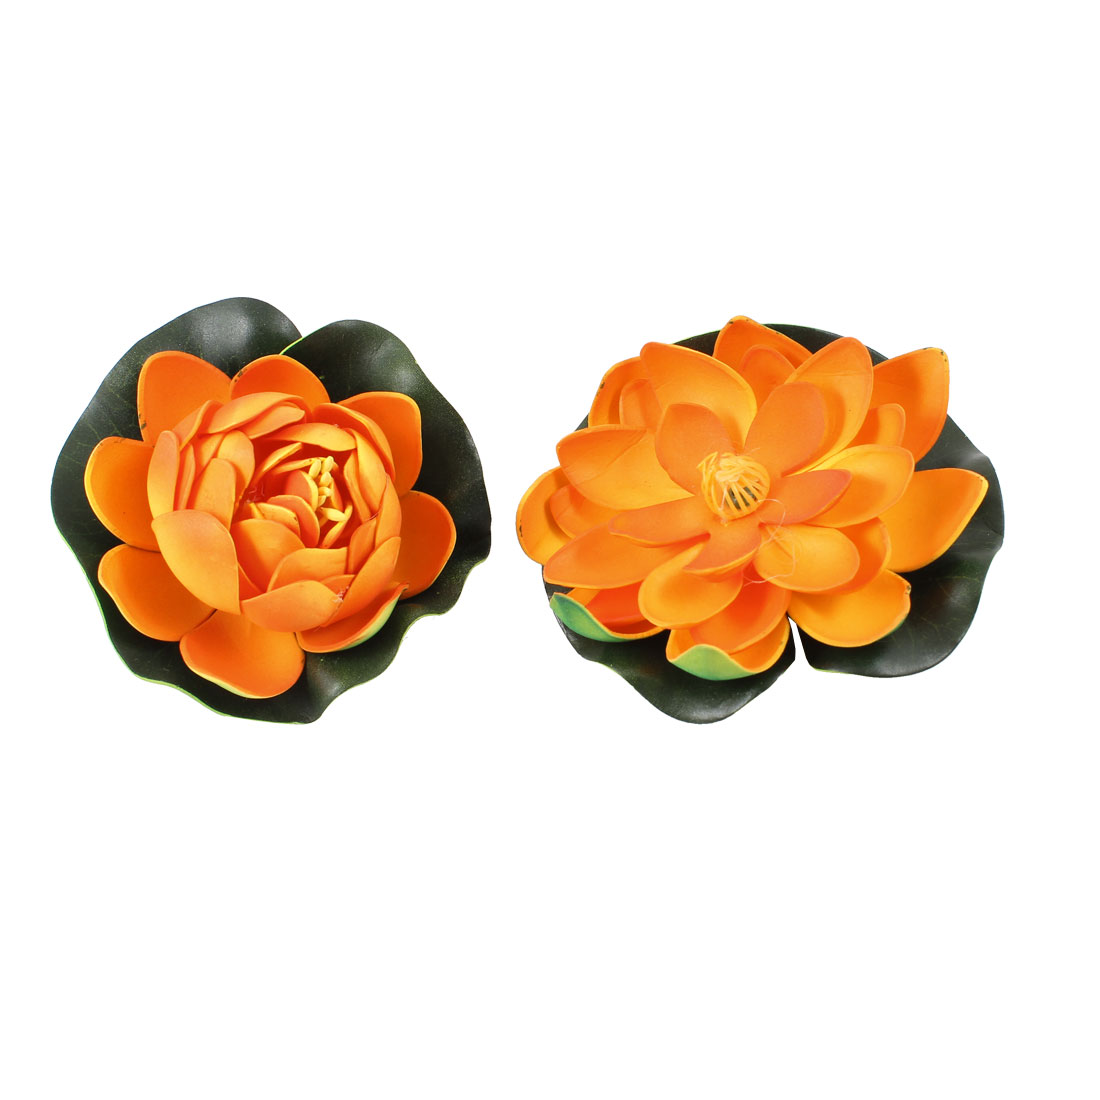 Lotus Shaped Foam Floating Plants Decoration 2 Pcs Orange Green for Aquarium Fish Tank